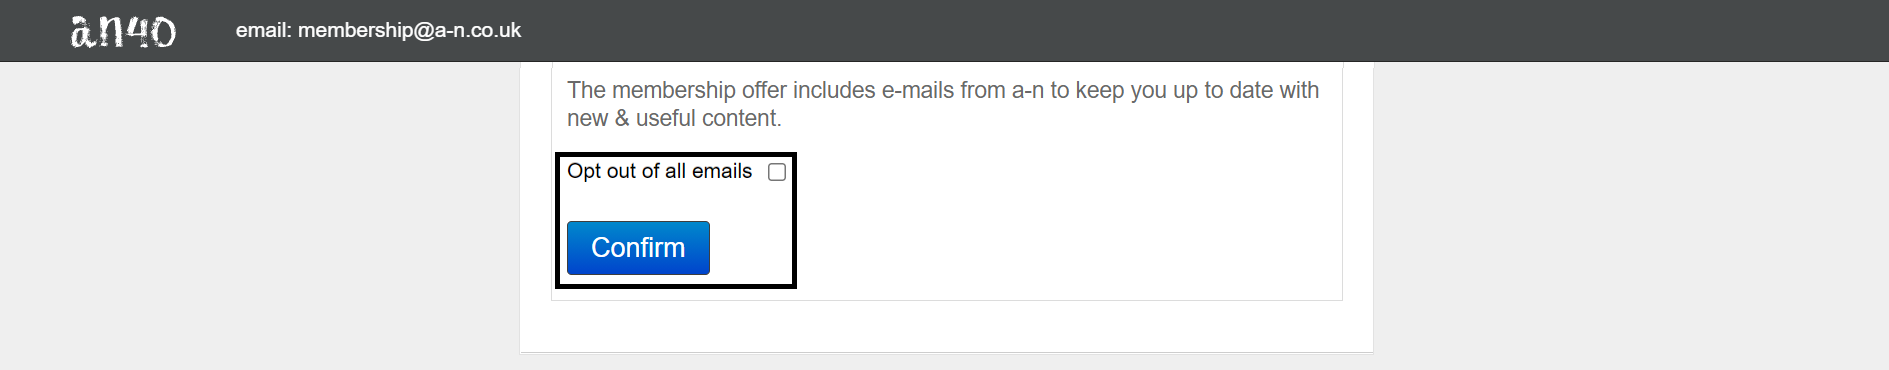 Checkbox to opt out of all email and confirm button highlighted